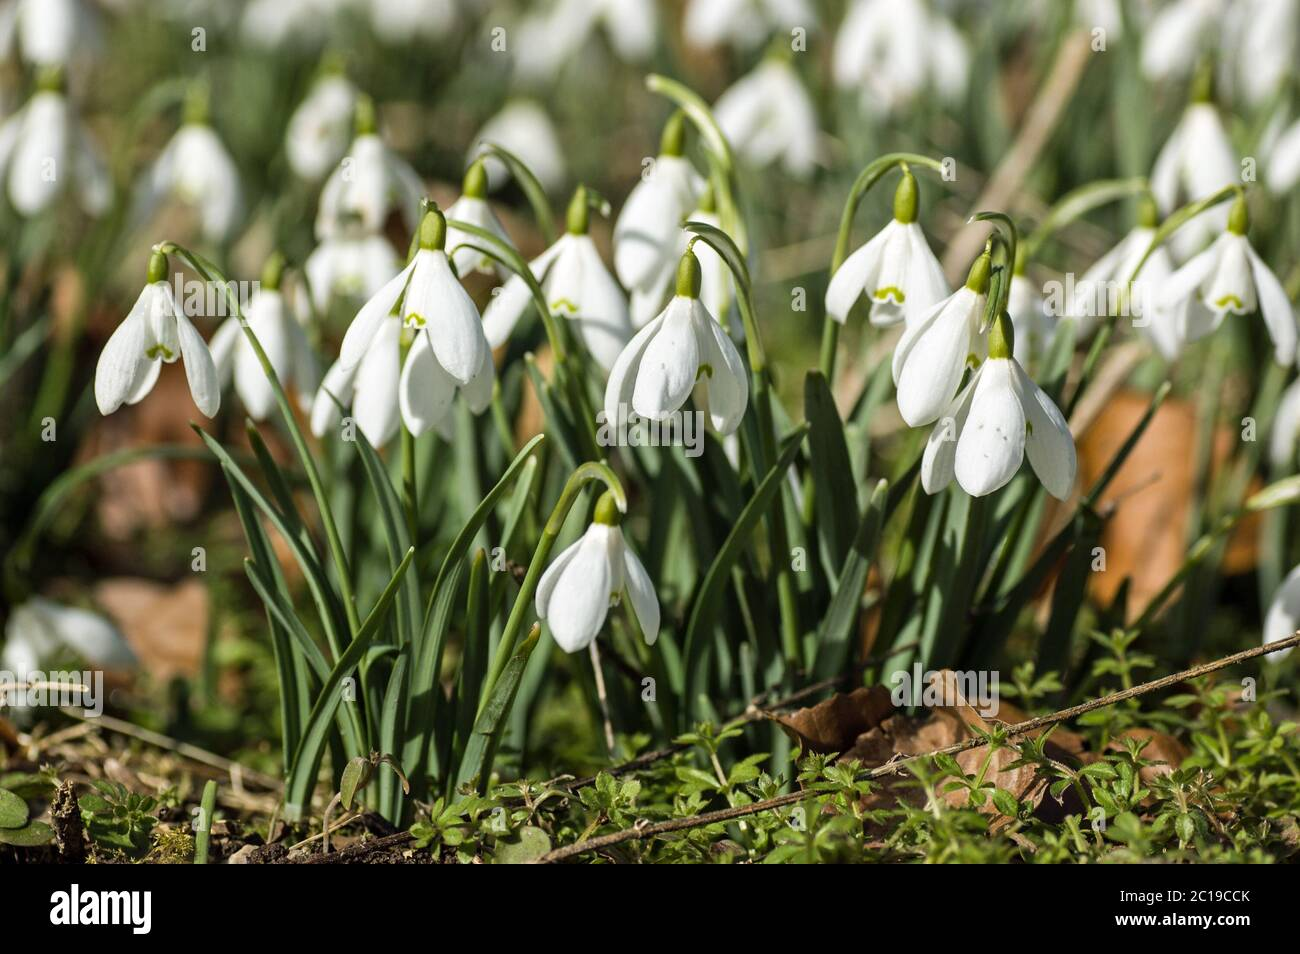 A clump of wild snowdrops, latin name galanthus, flowering in mid February. Welford Park, near Newbury, Berkshire. Stock Photo